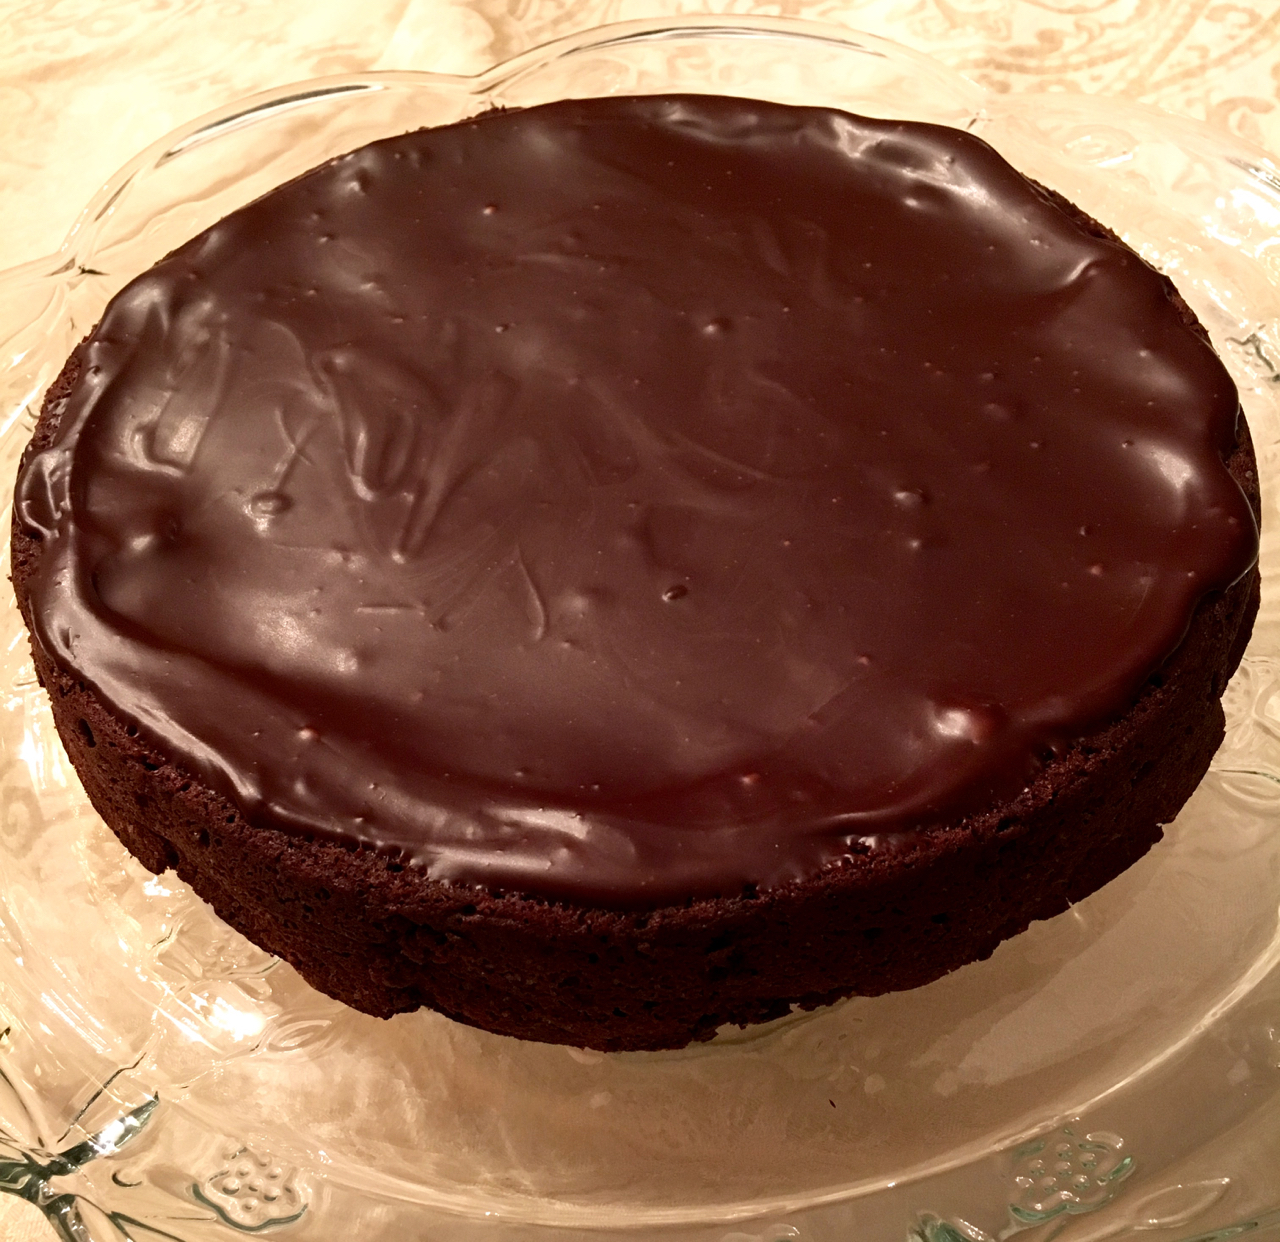 Flourless Chocolate Cake With Ganache Glaze